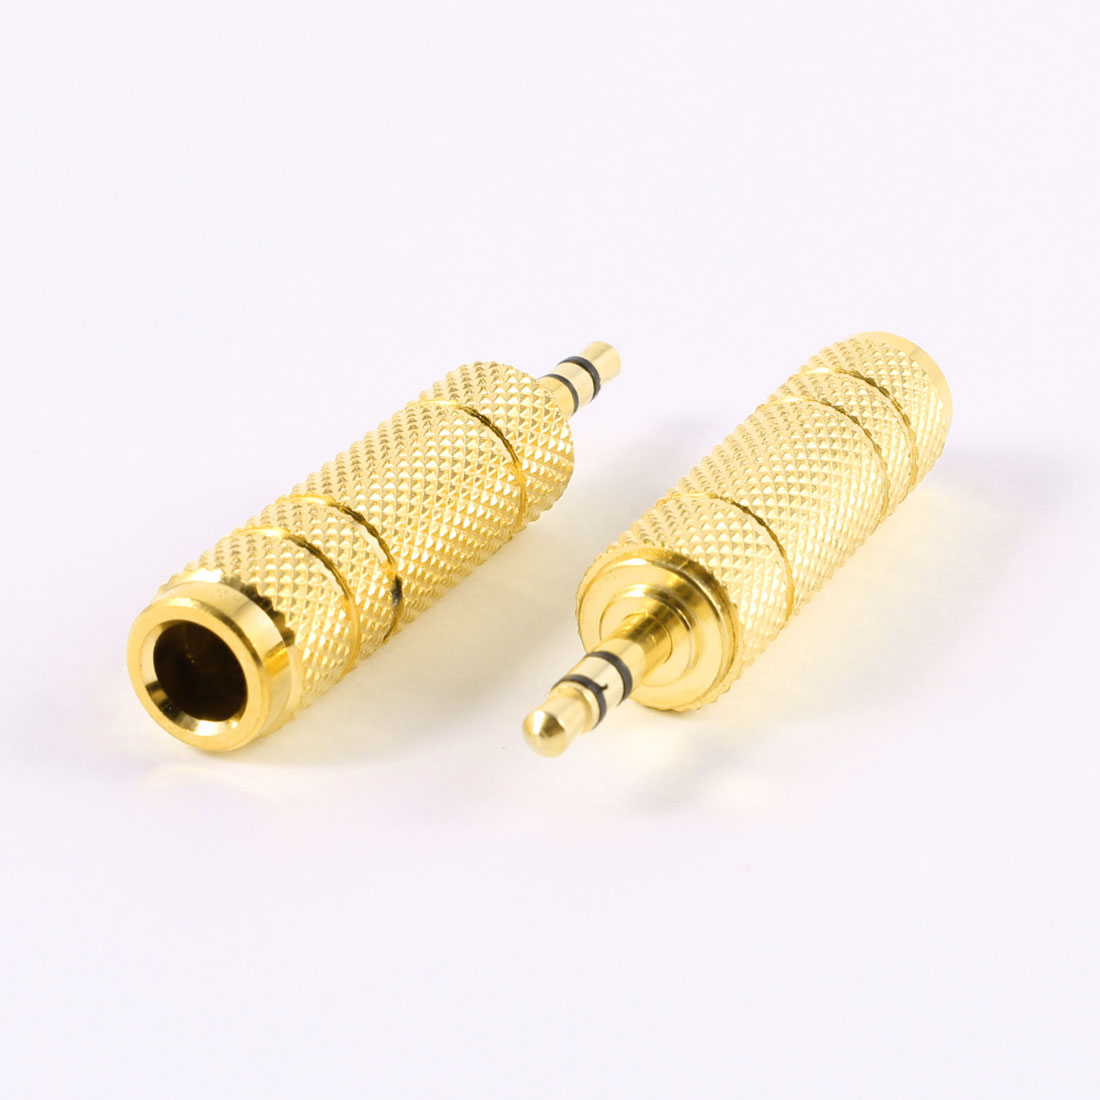 2 Pcs 3.5mm Male to 6.35mm Female Gold Tone Metal Audio Adapter Converter